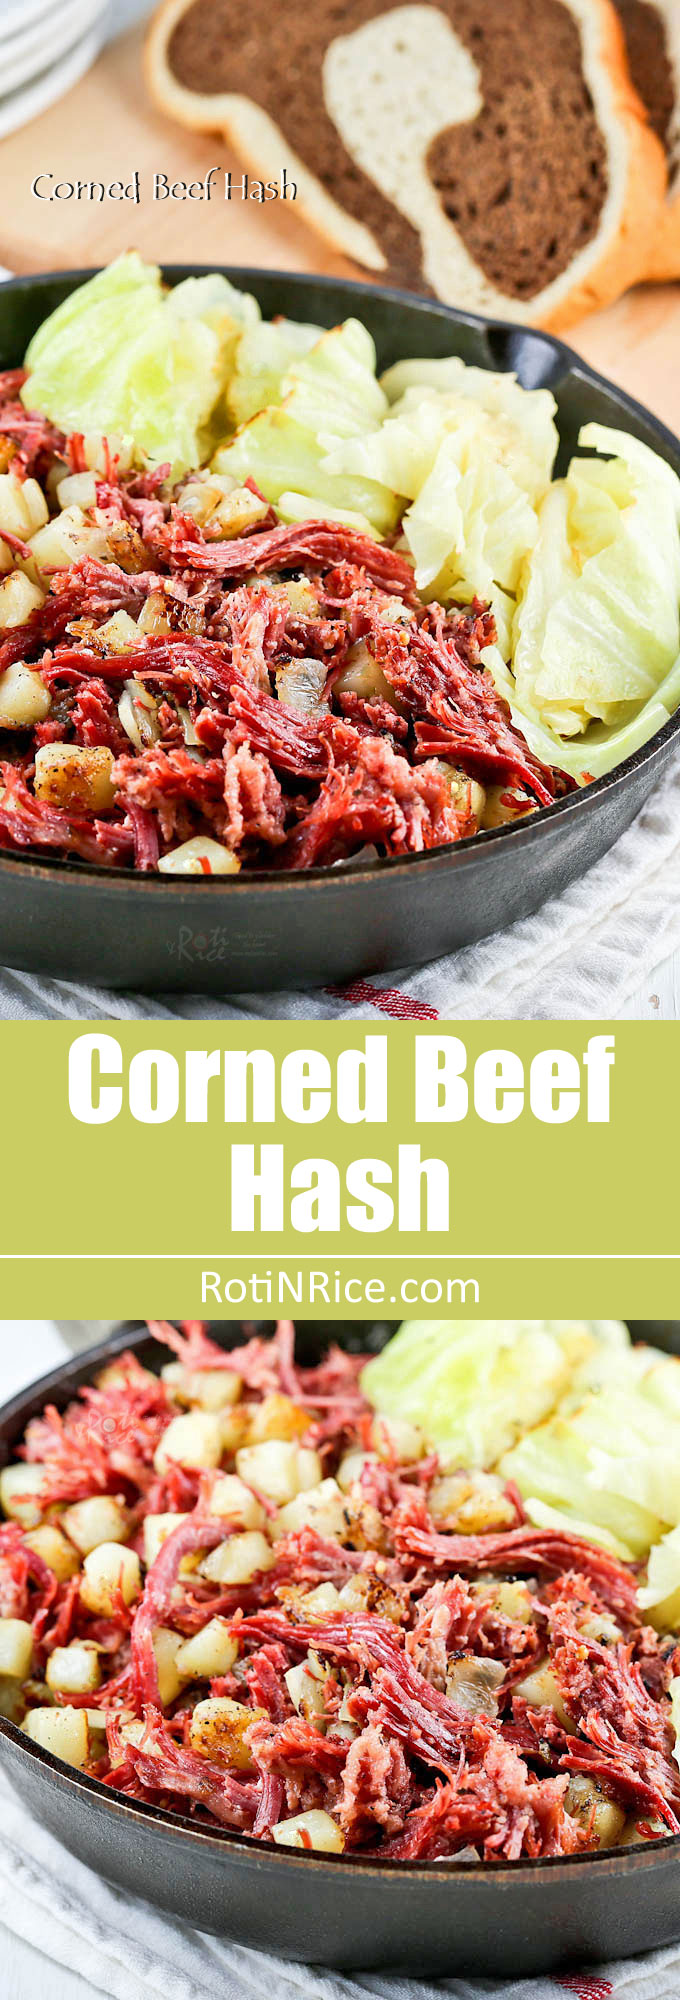 Corned Beef Hash - a delicious combination of tender shredded corned beef, potatoes, onions, and pan braised cabbage wedges. | RotiNRice.com